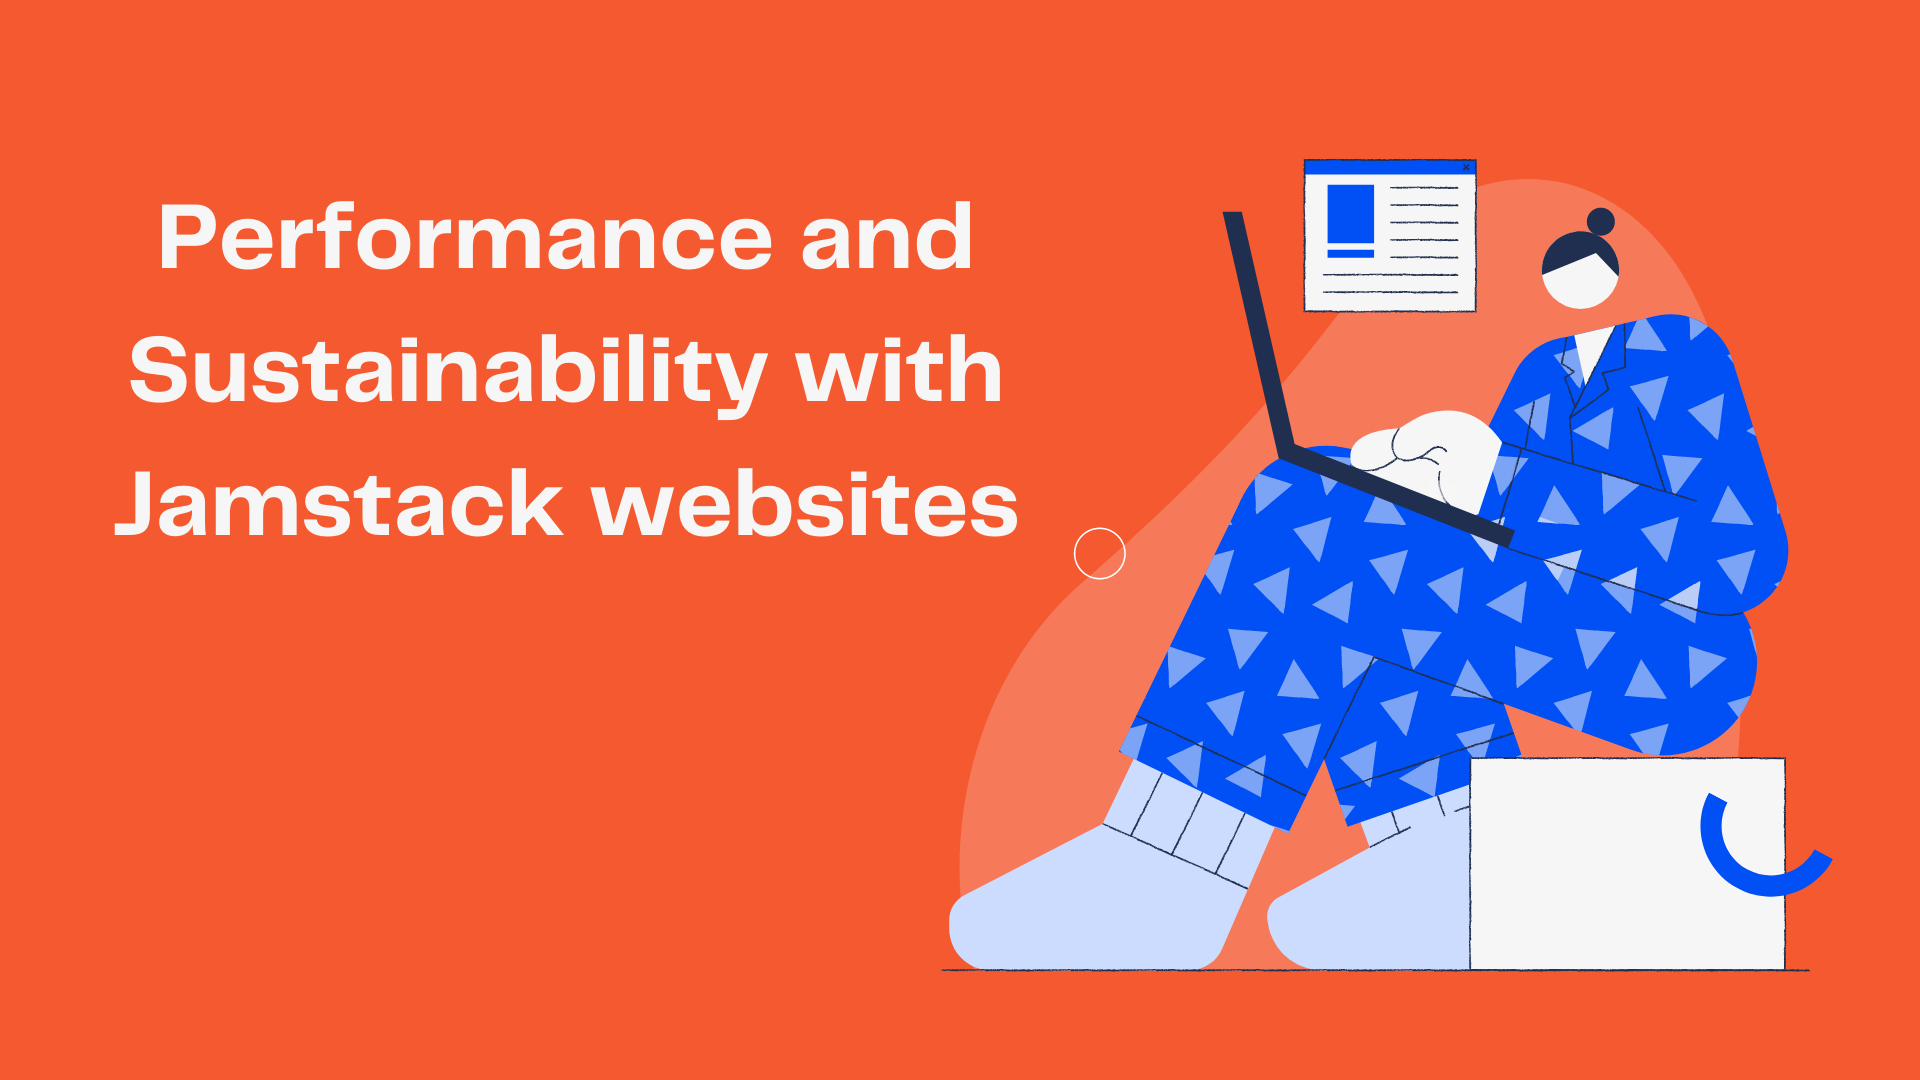 Performance and Sustainability with Jamstack websites